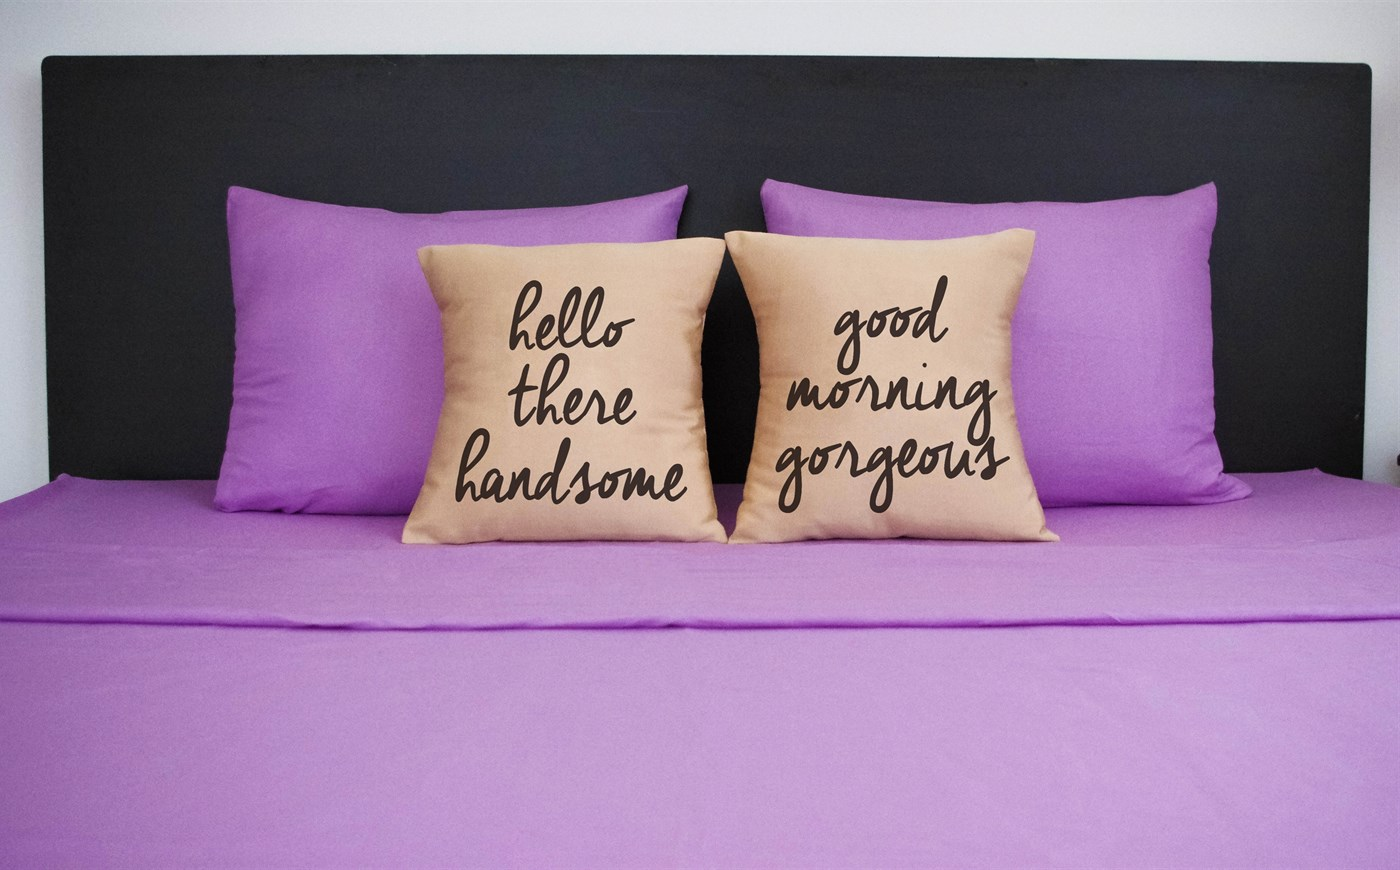 Hello there handsome, good morning gorgeous pillow cases - Set of 2!